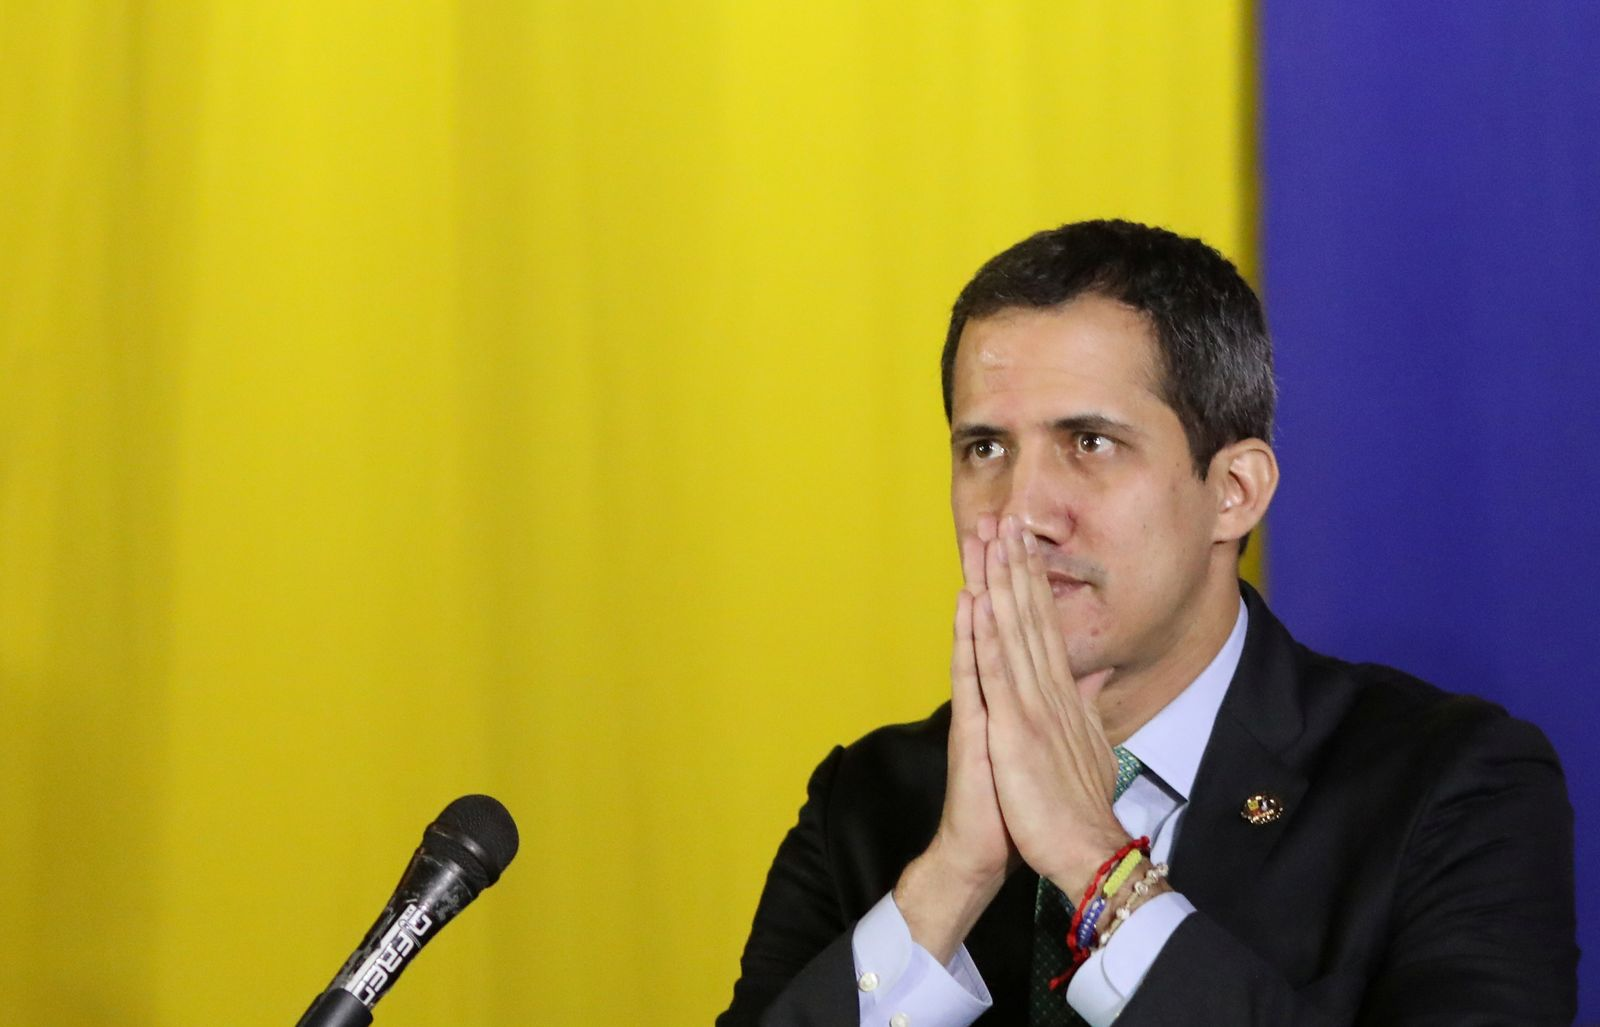 Venezuelan National Assembly President and opposition leader Juan Guaido, who many nations have recognised as the country's rightful interim ruler, takes part in a session of Venezuela's National Assembly in San Antonio